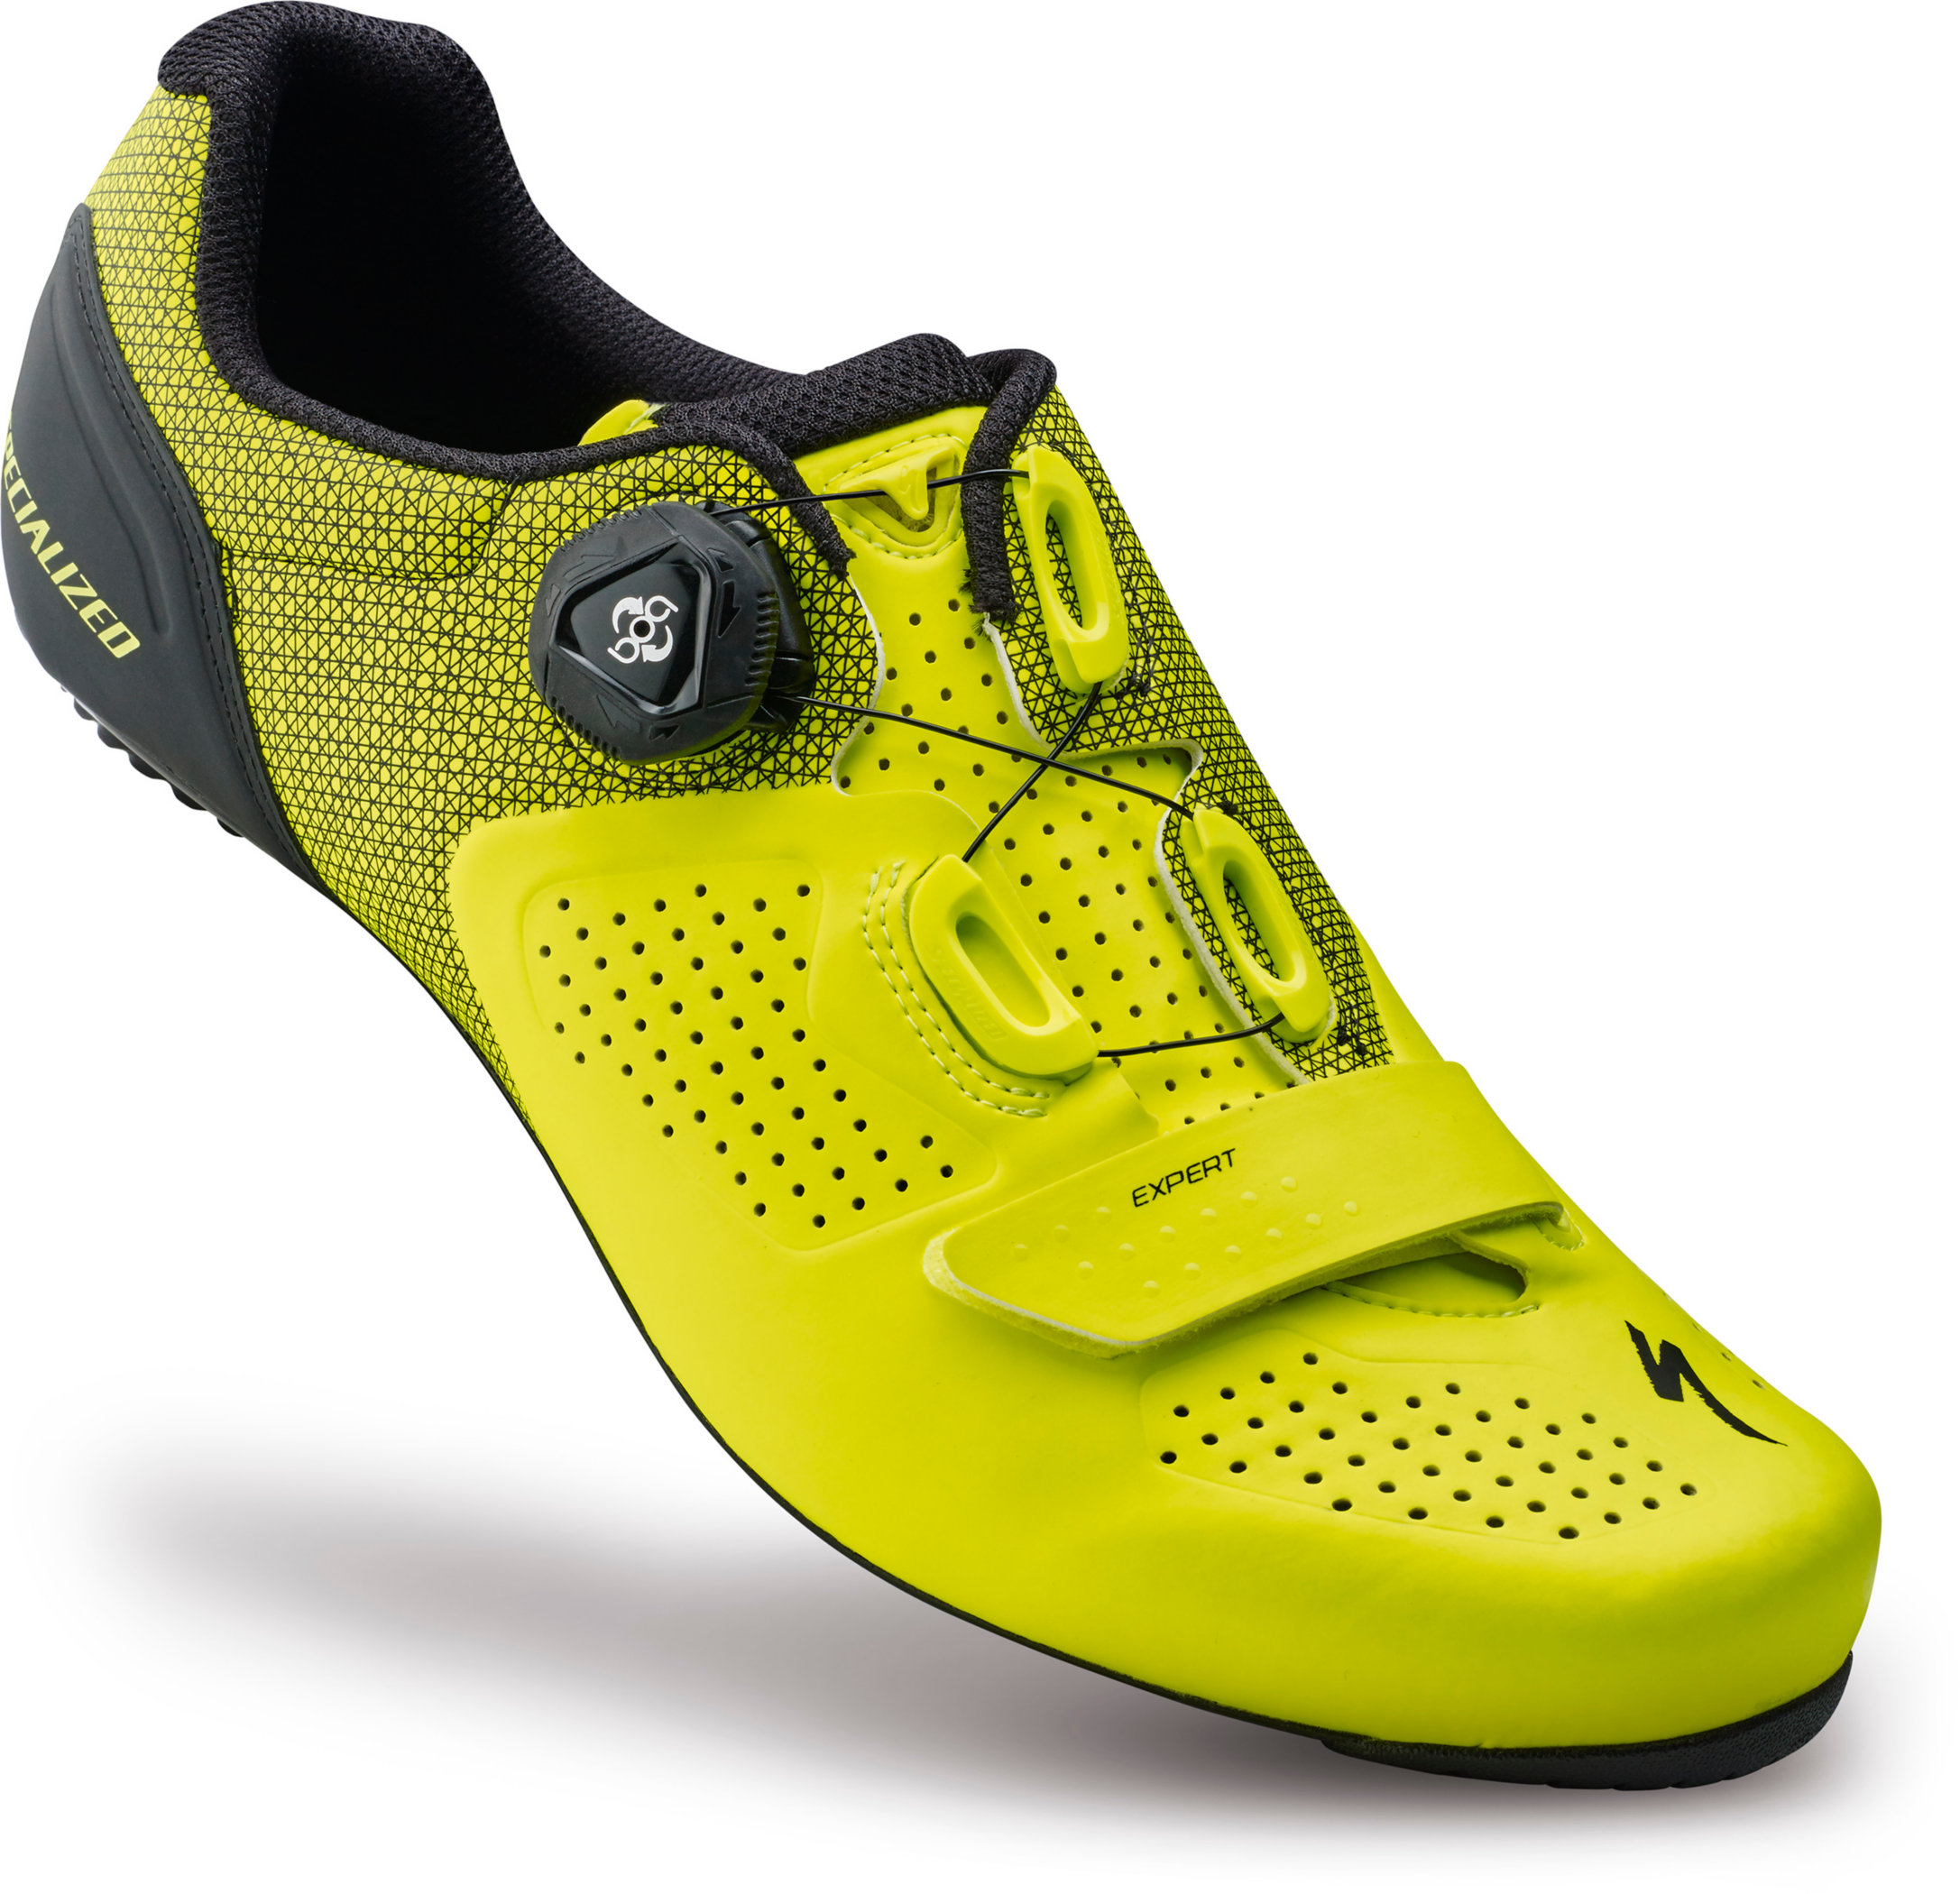 SPECIALIZED EXPERT RD SHOE NEON YEL 45/11.5 - Bikedreams & Dustbikes